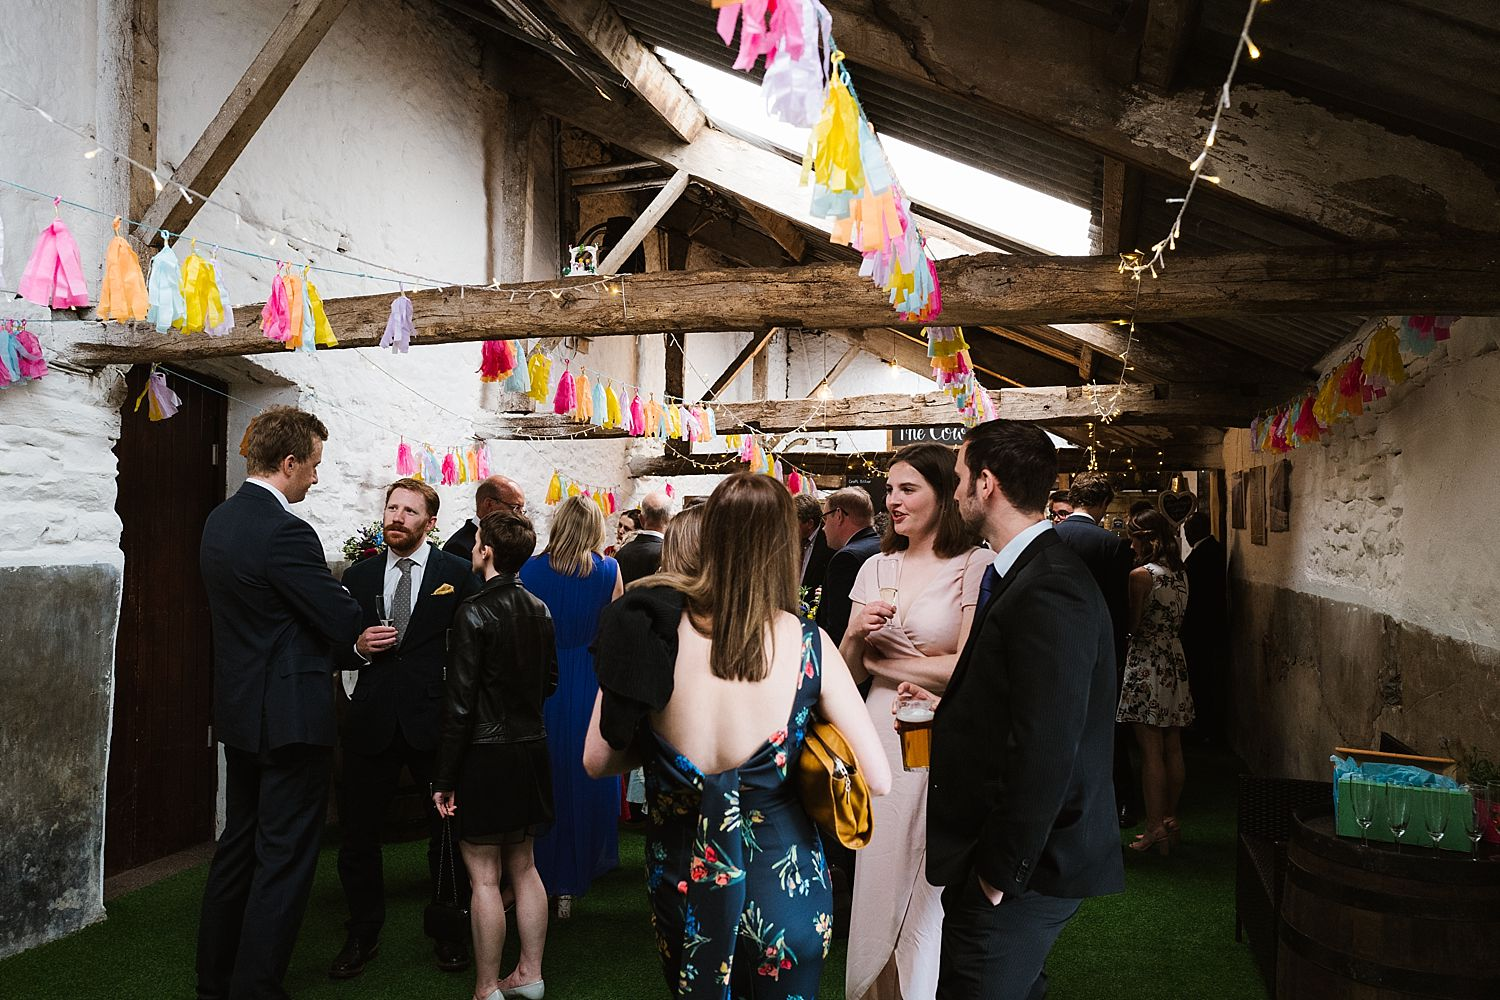 Guests mingling in the big barn at South Lakes wedding venue Park House Barn